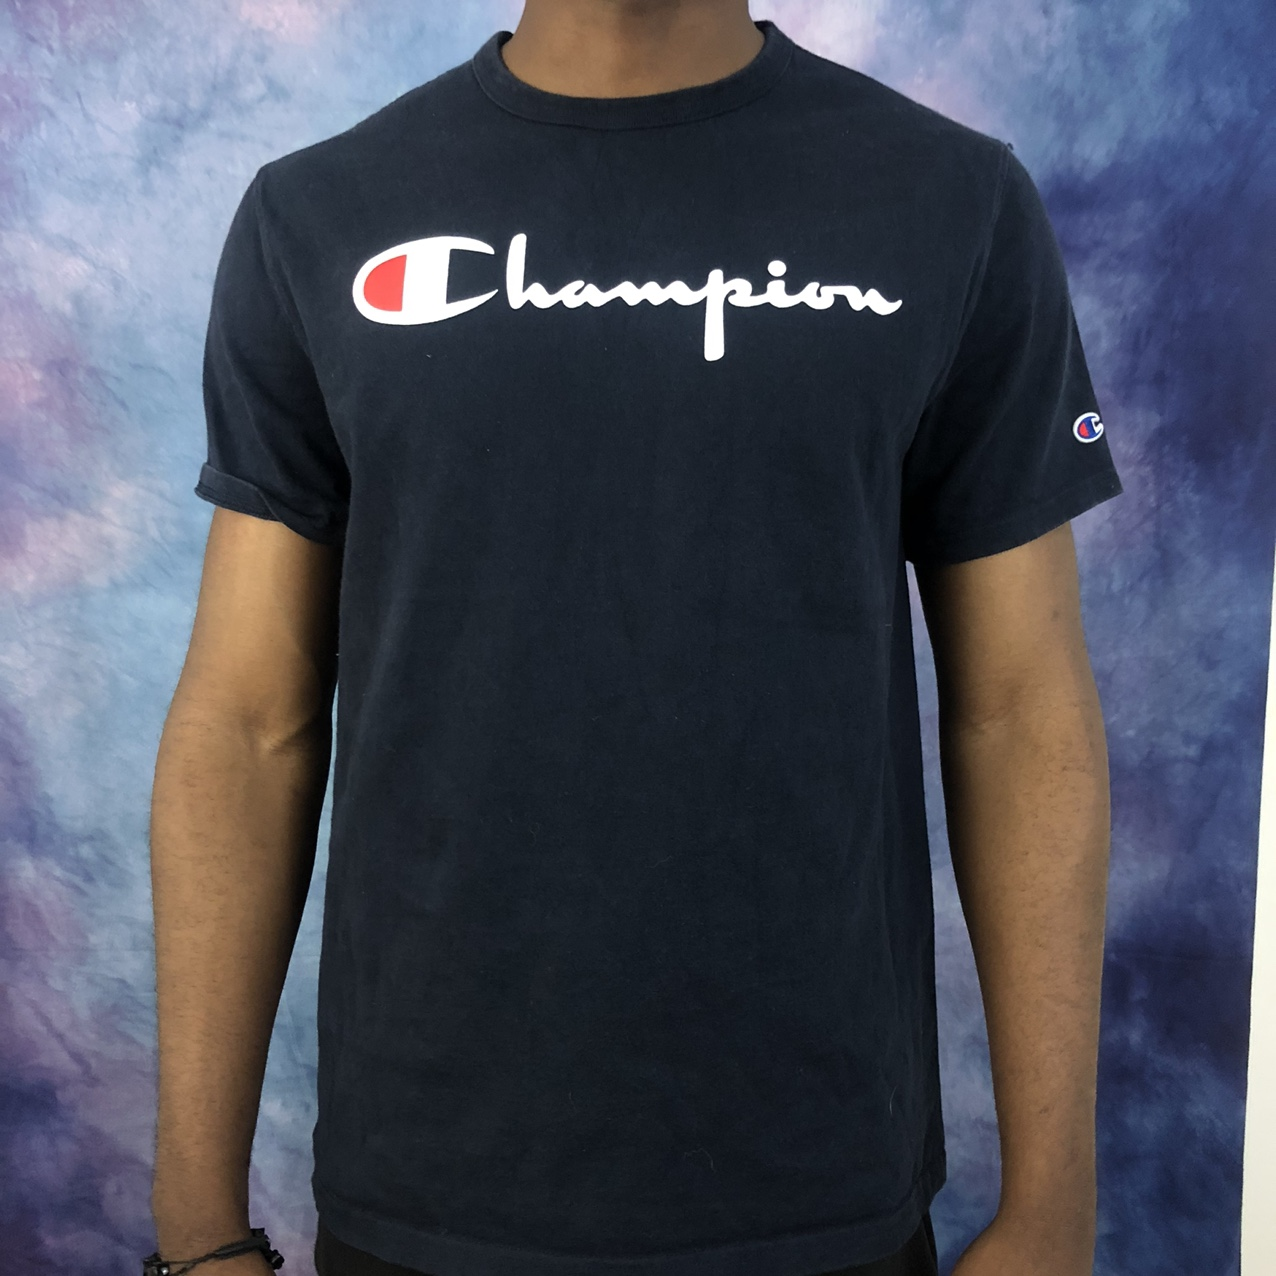 Product Image 1 - Navy blue Champions shirt in